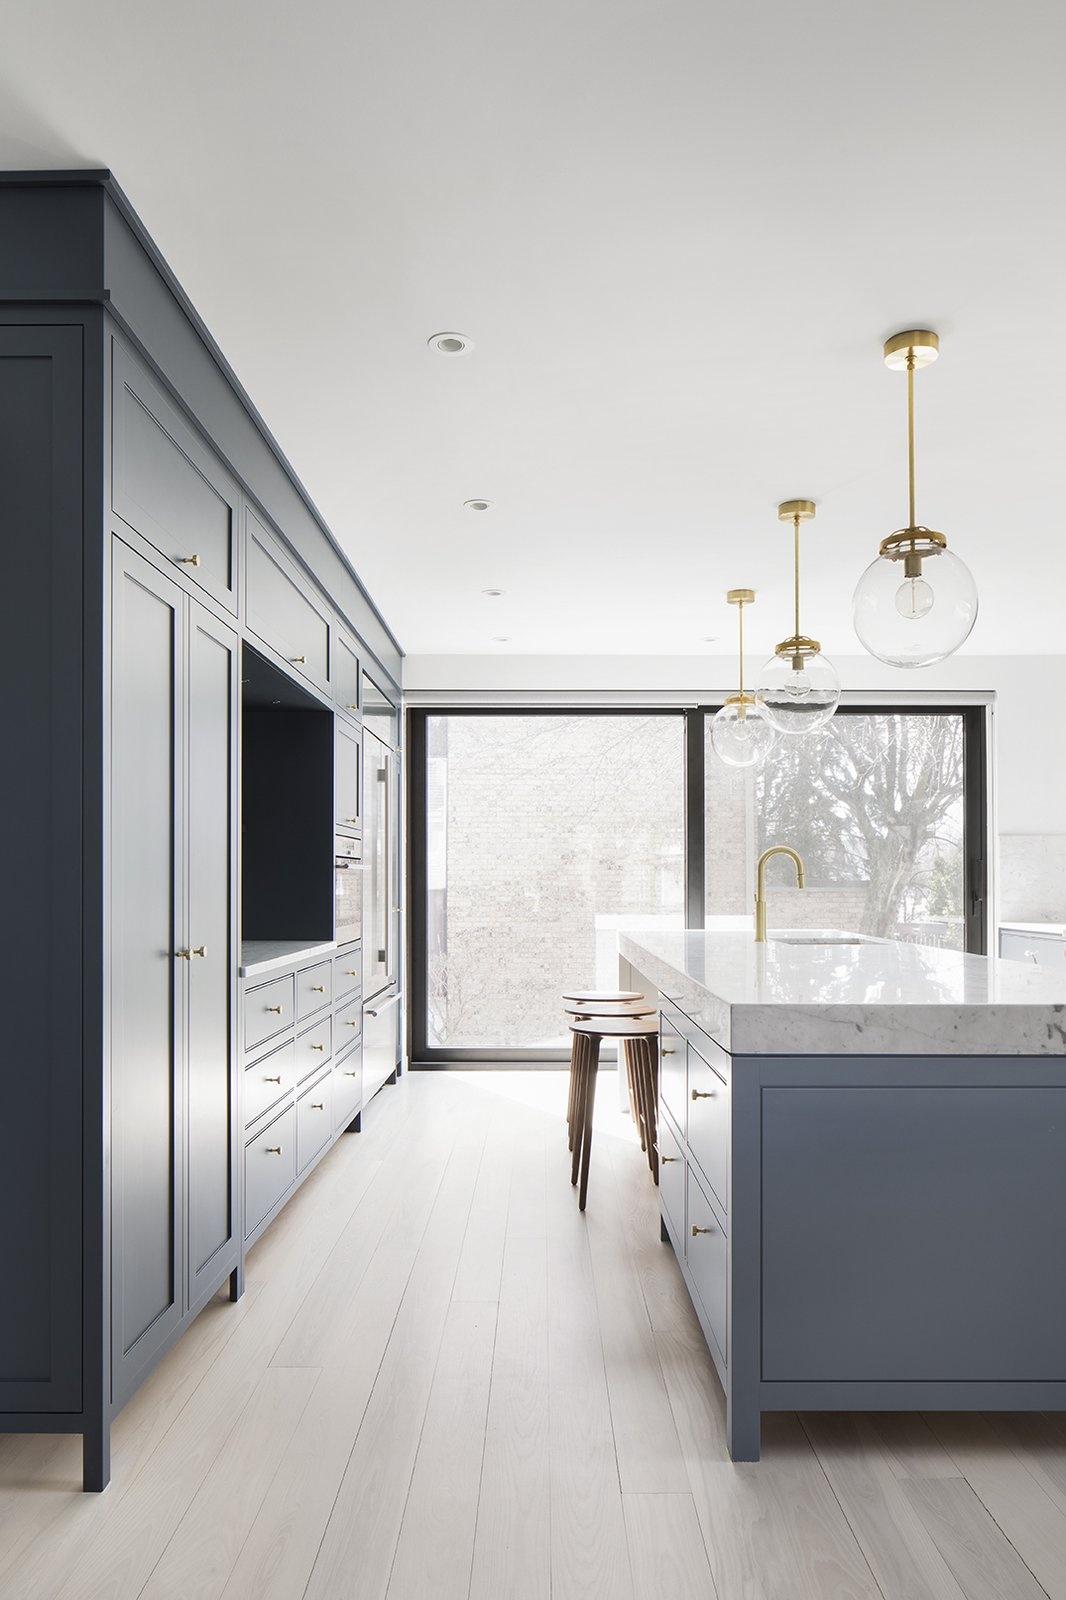 Kitchen, Recessed Lighting, Colorful Cabinet, Pendant Lighting, Refrigerator, Light Hardwood Floor, Marble Counter, Wall Oven, and Undermount Sink  Hampstead House by RobitailleCurtis